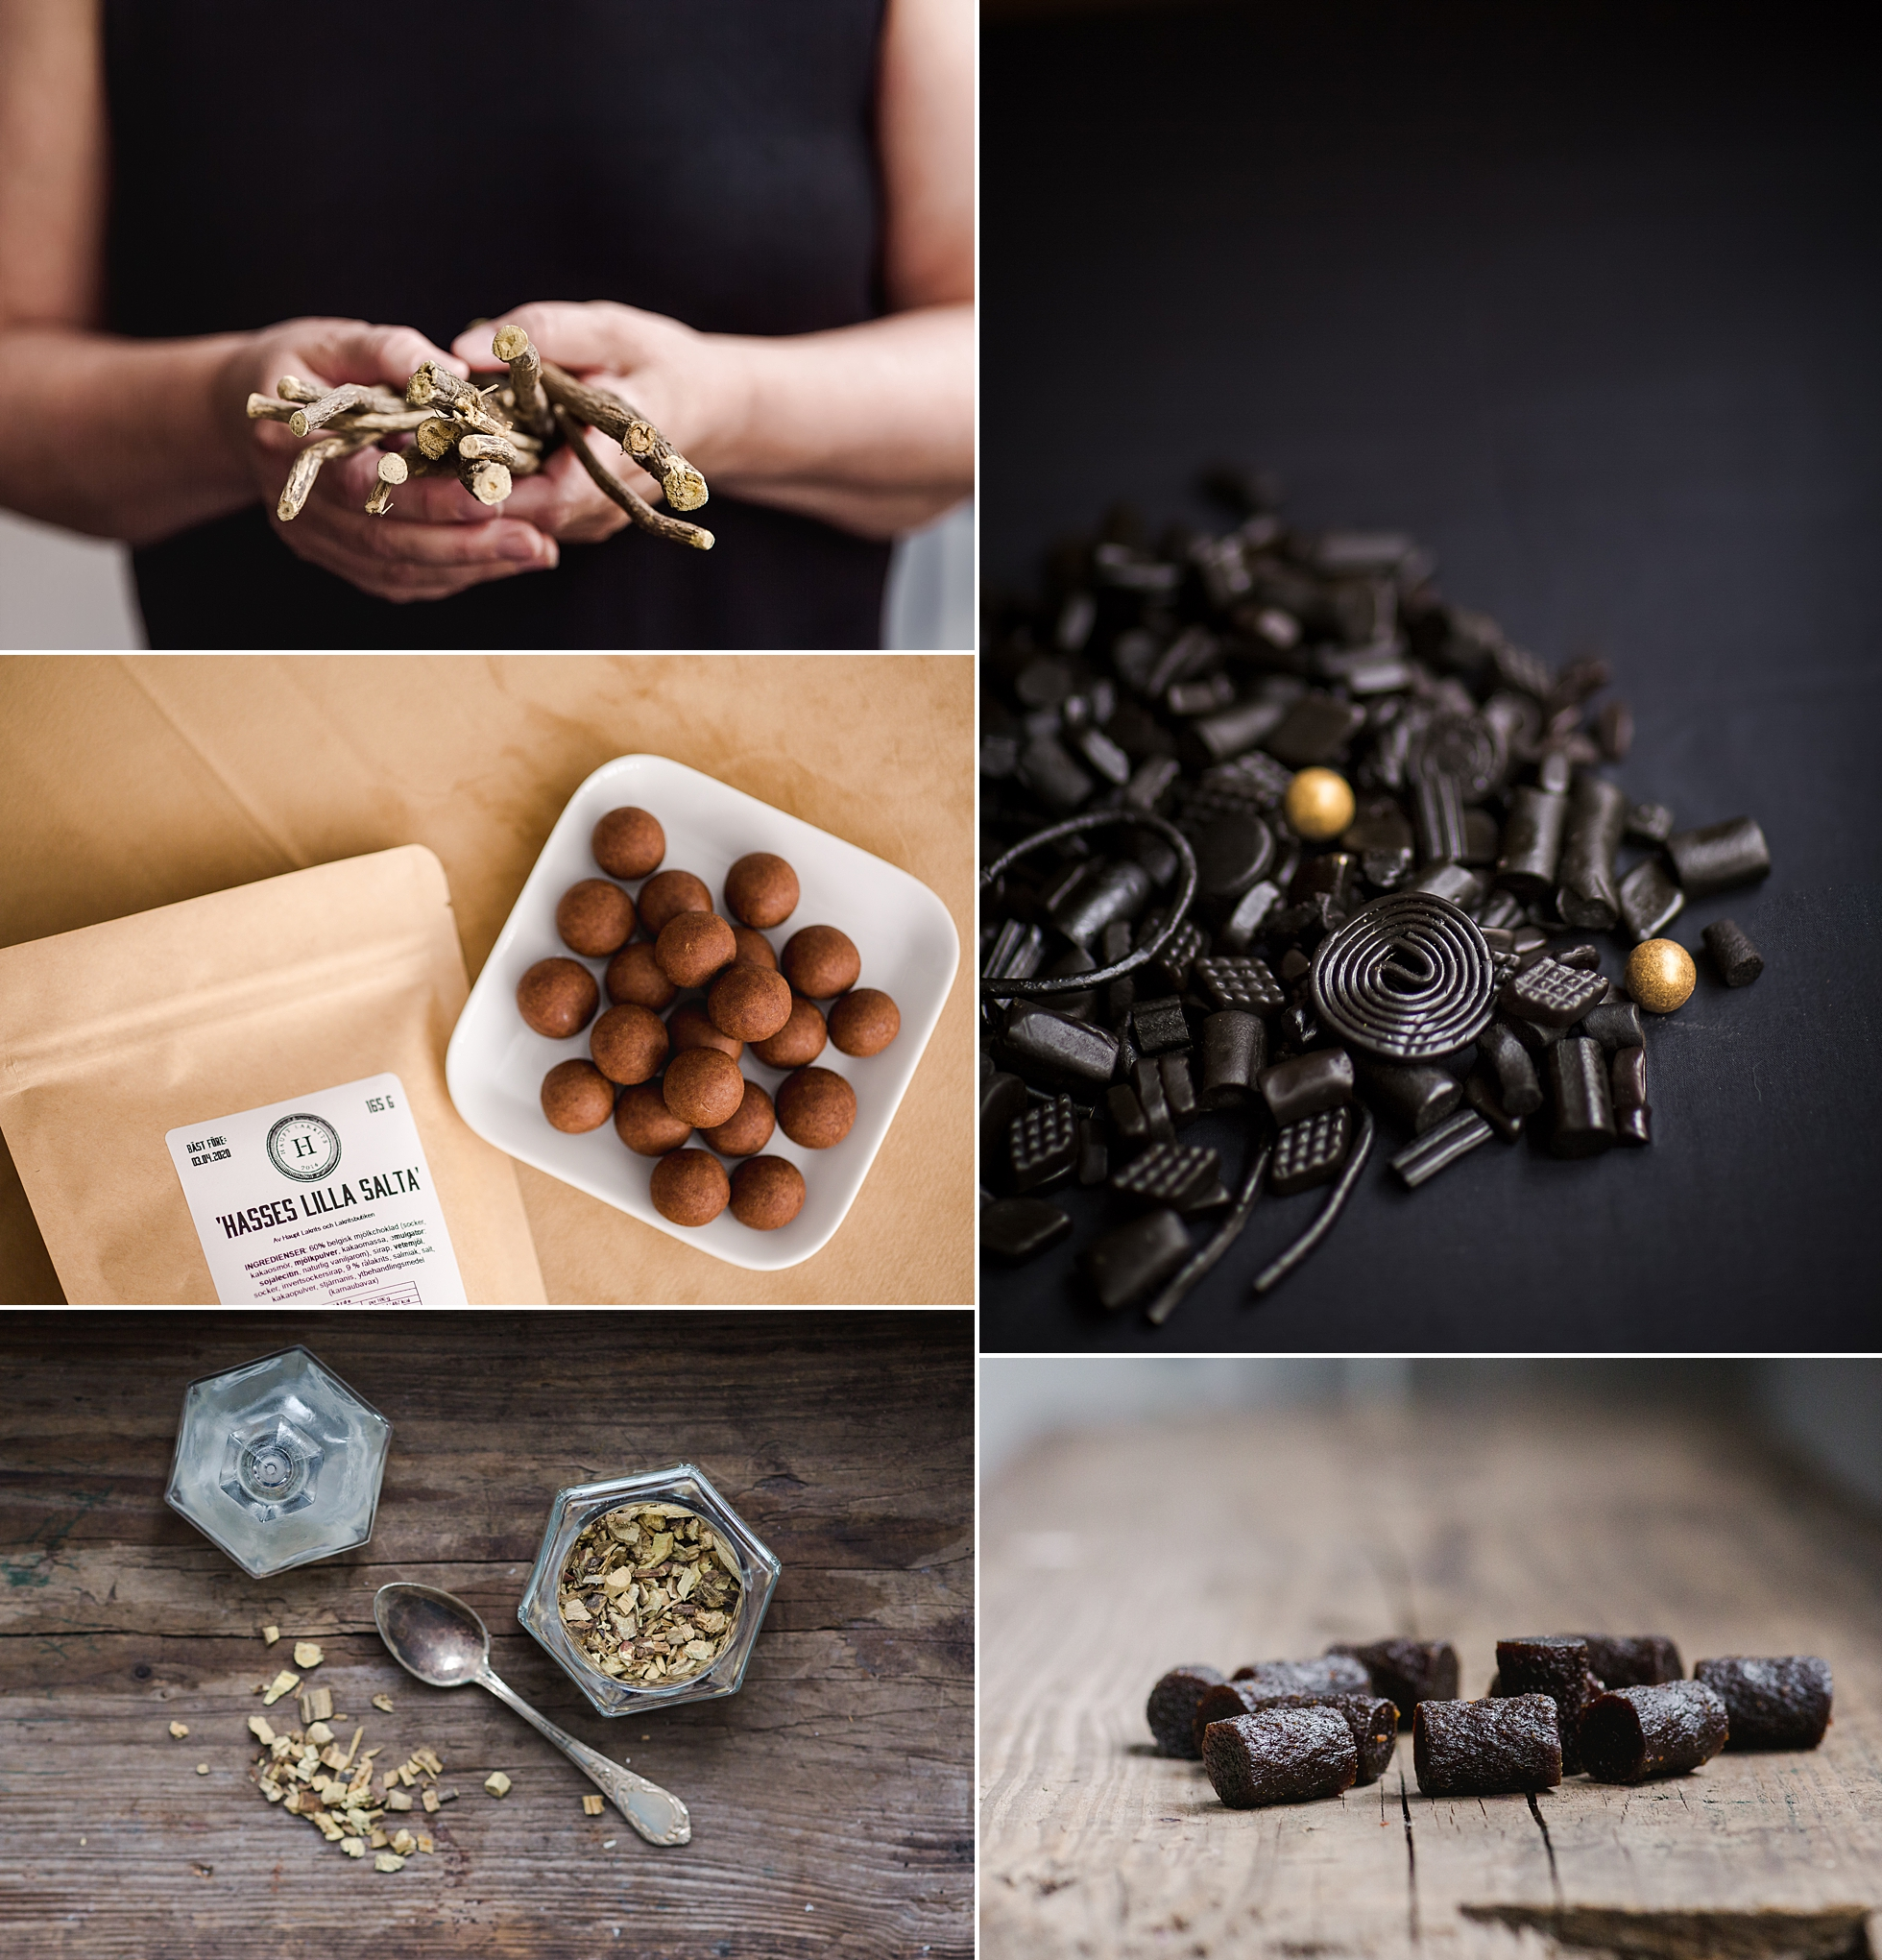 Product photography for Lakritsbutiken